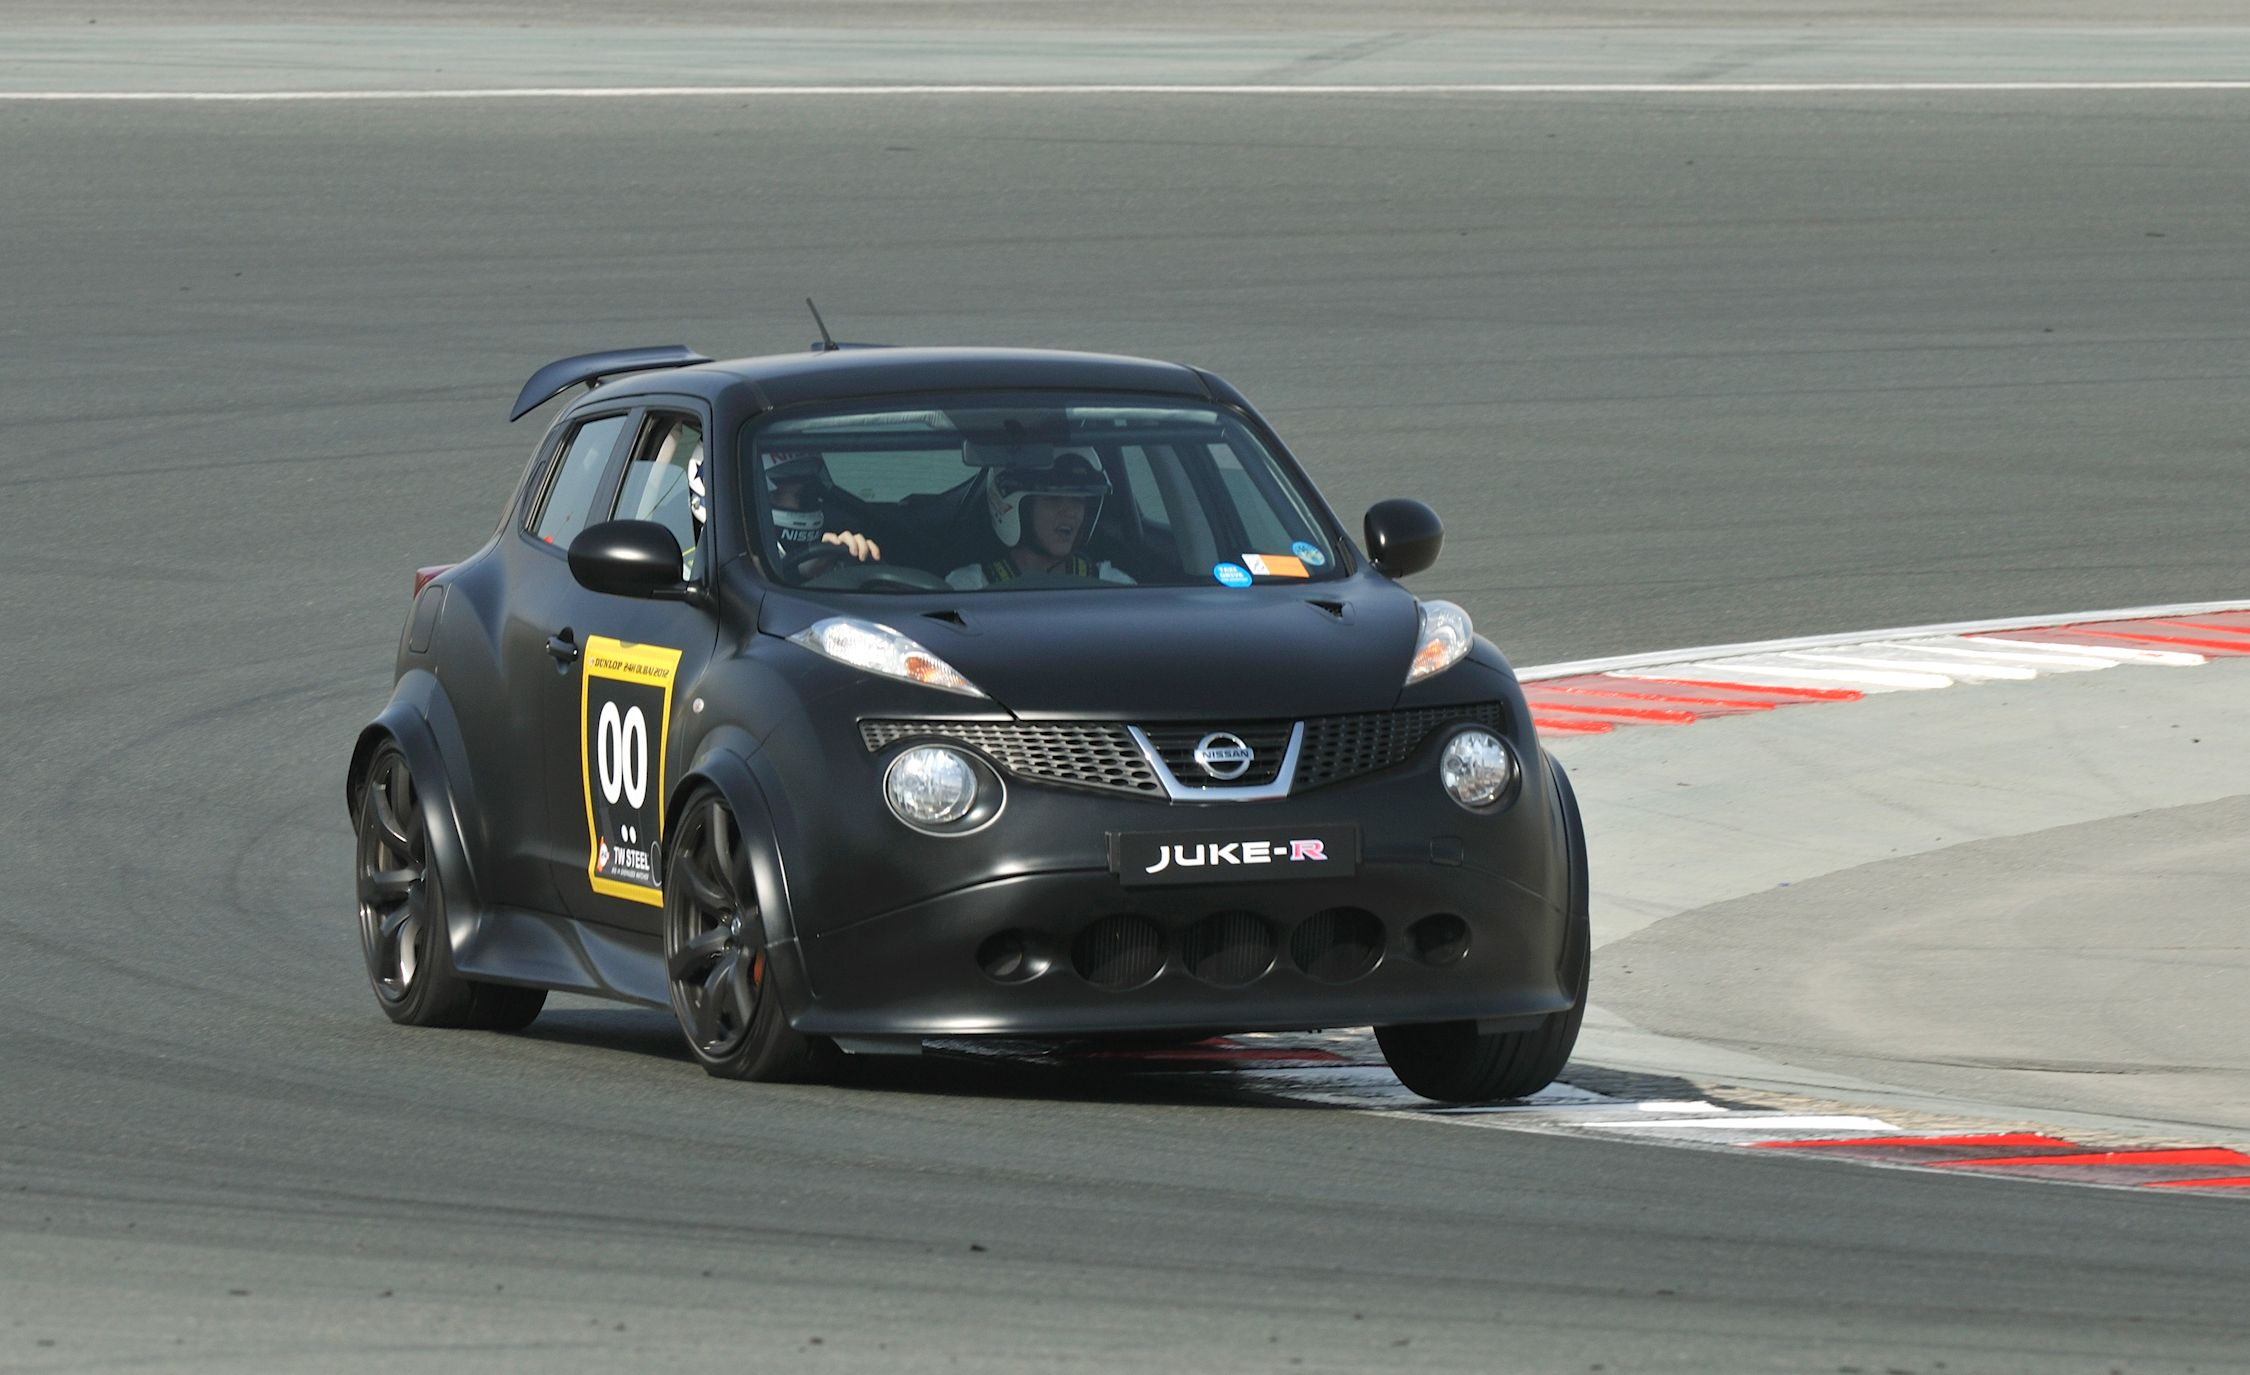 nissan juke r first drive review car and driver. Black Bedroom Furniture Sets. Home Design Ideas